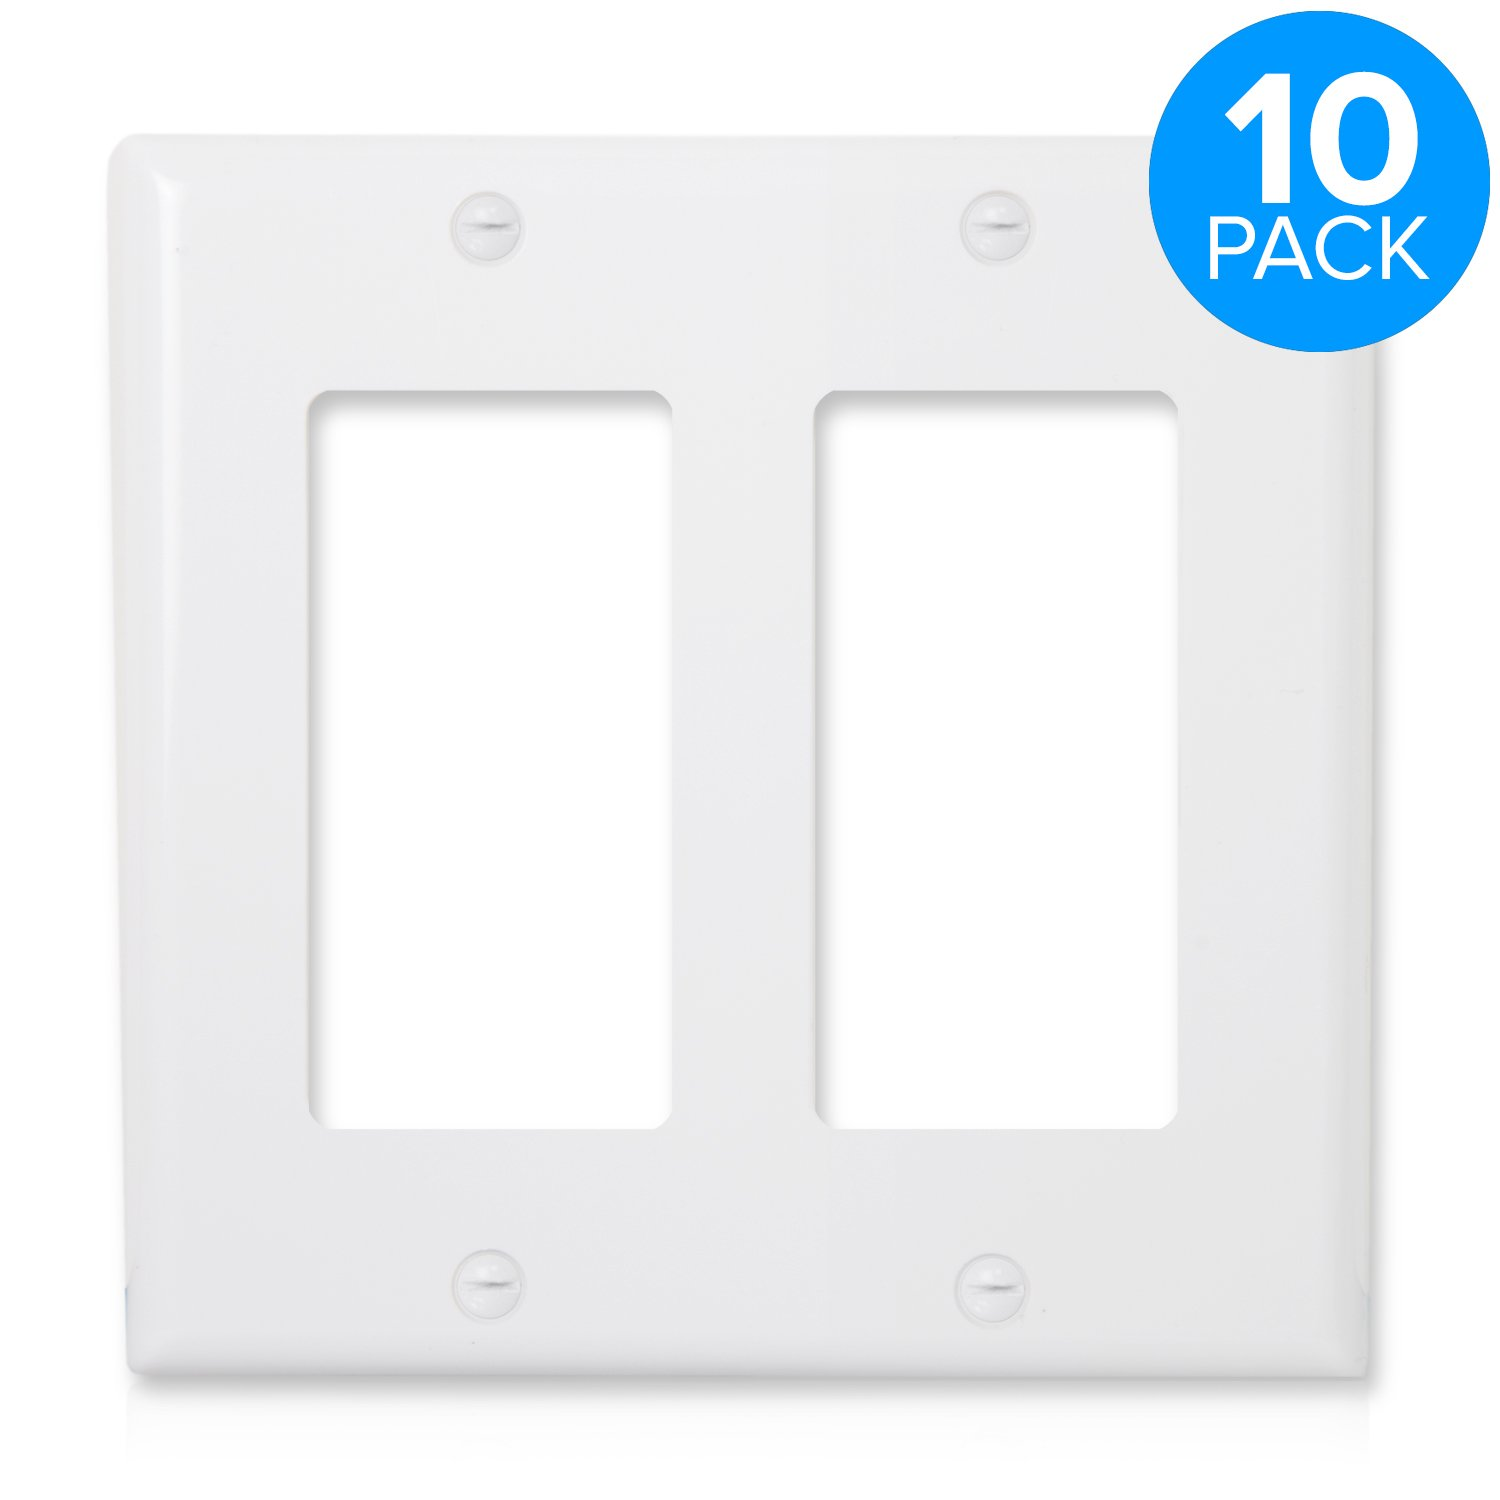 Maxxima 2 Gang Decorative Outlet Wall Plate, White, Standard Size (Pack of 10) by Maxxima